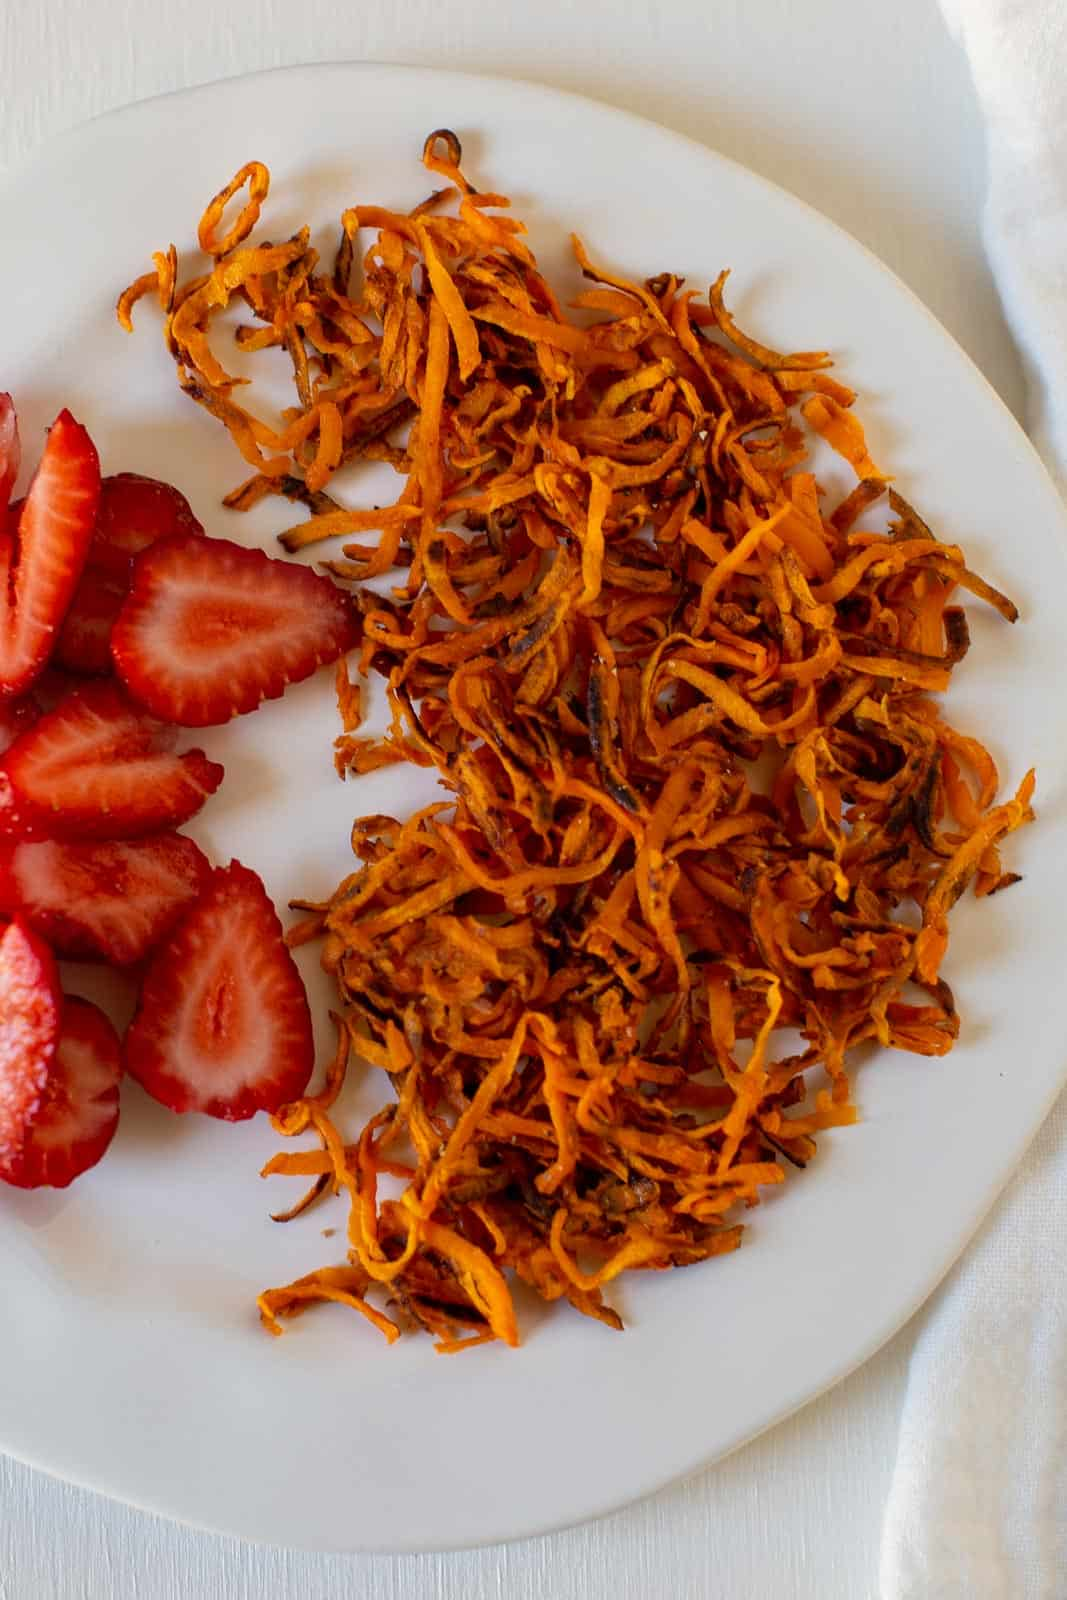 sweet potato hash browns cooked on a plate with strawberries